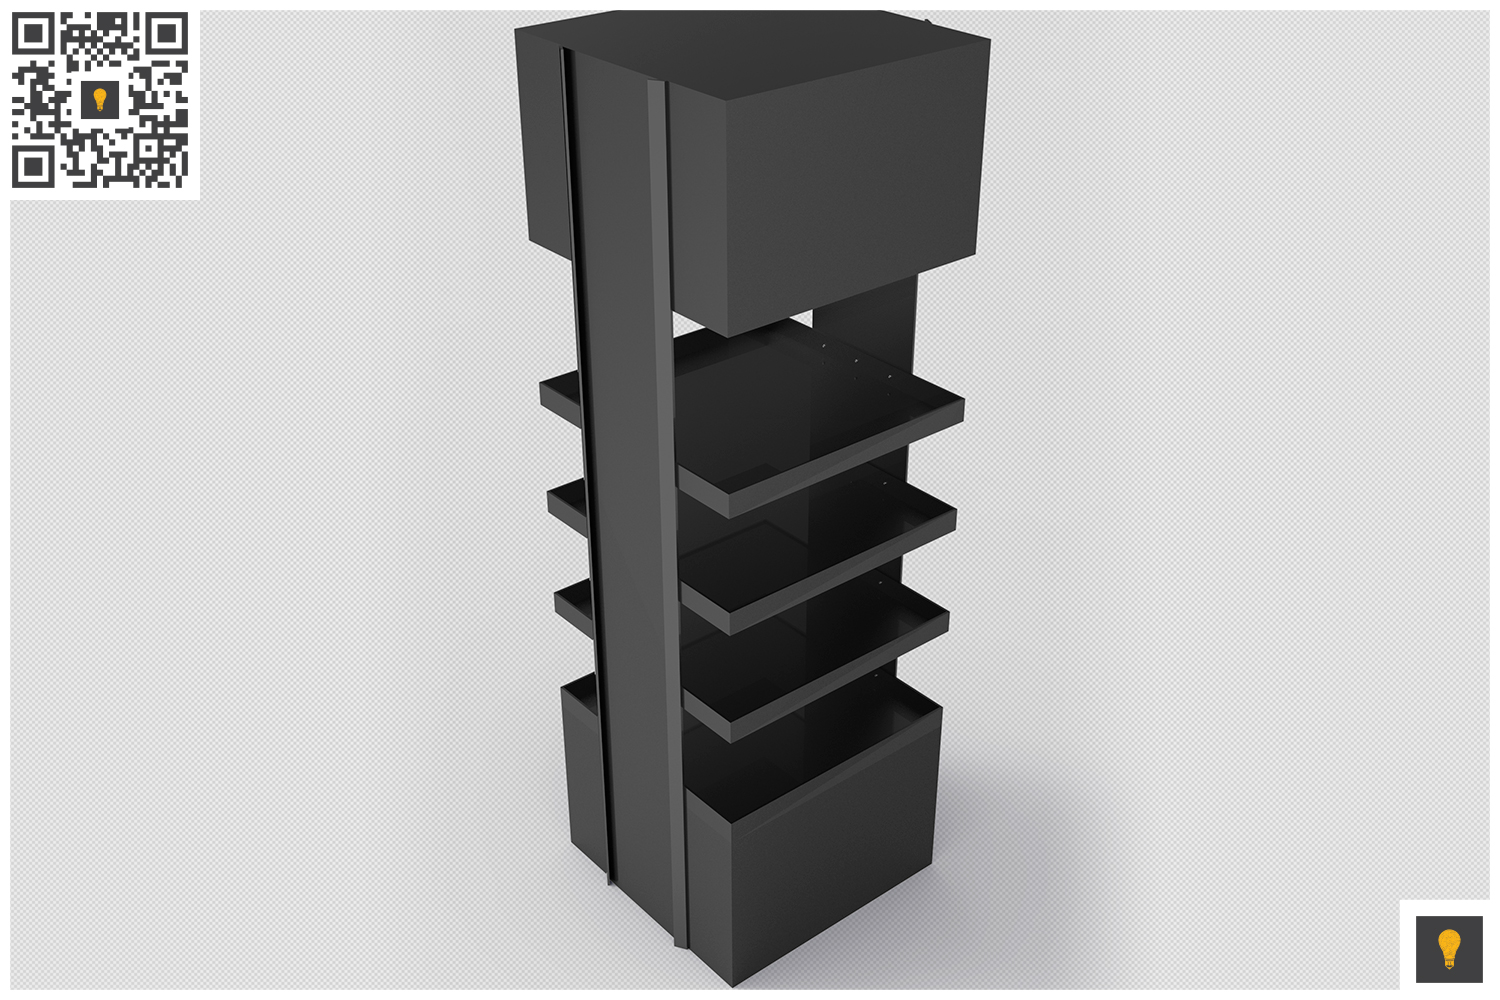 Promotional Store Shelf Stand 3D Render example image 5